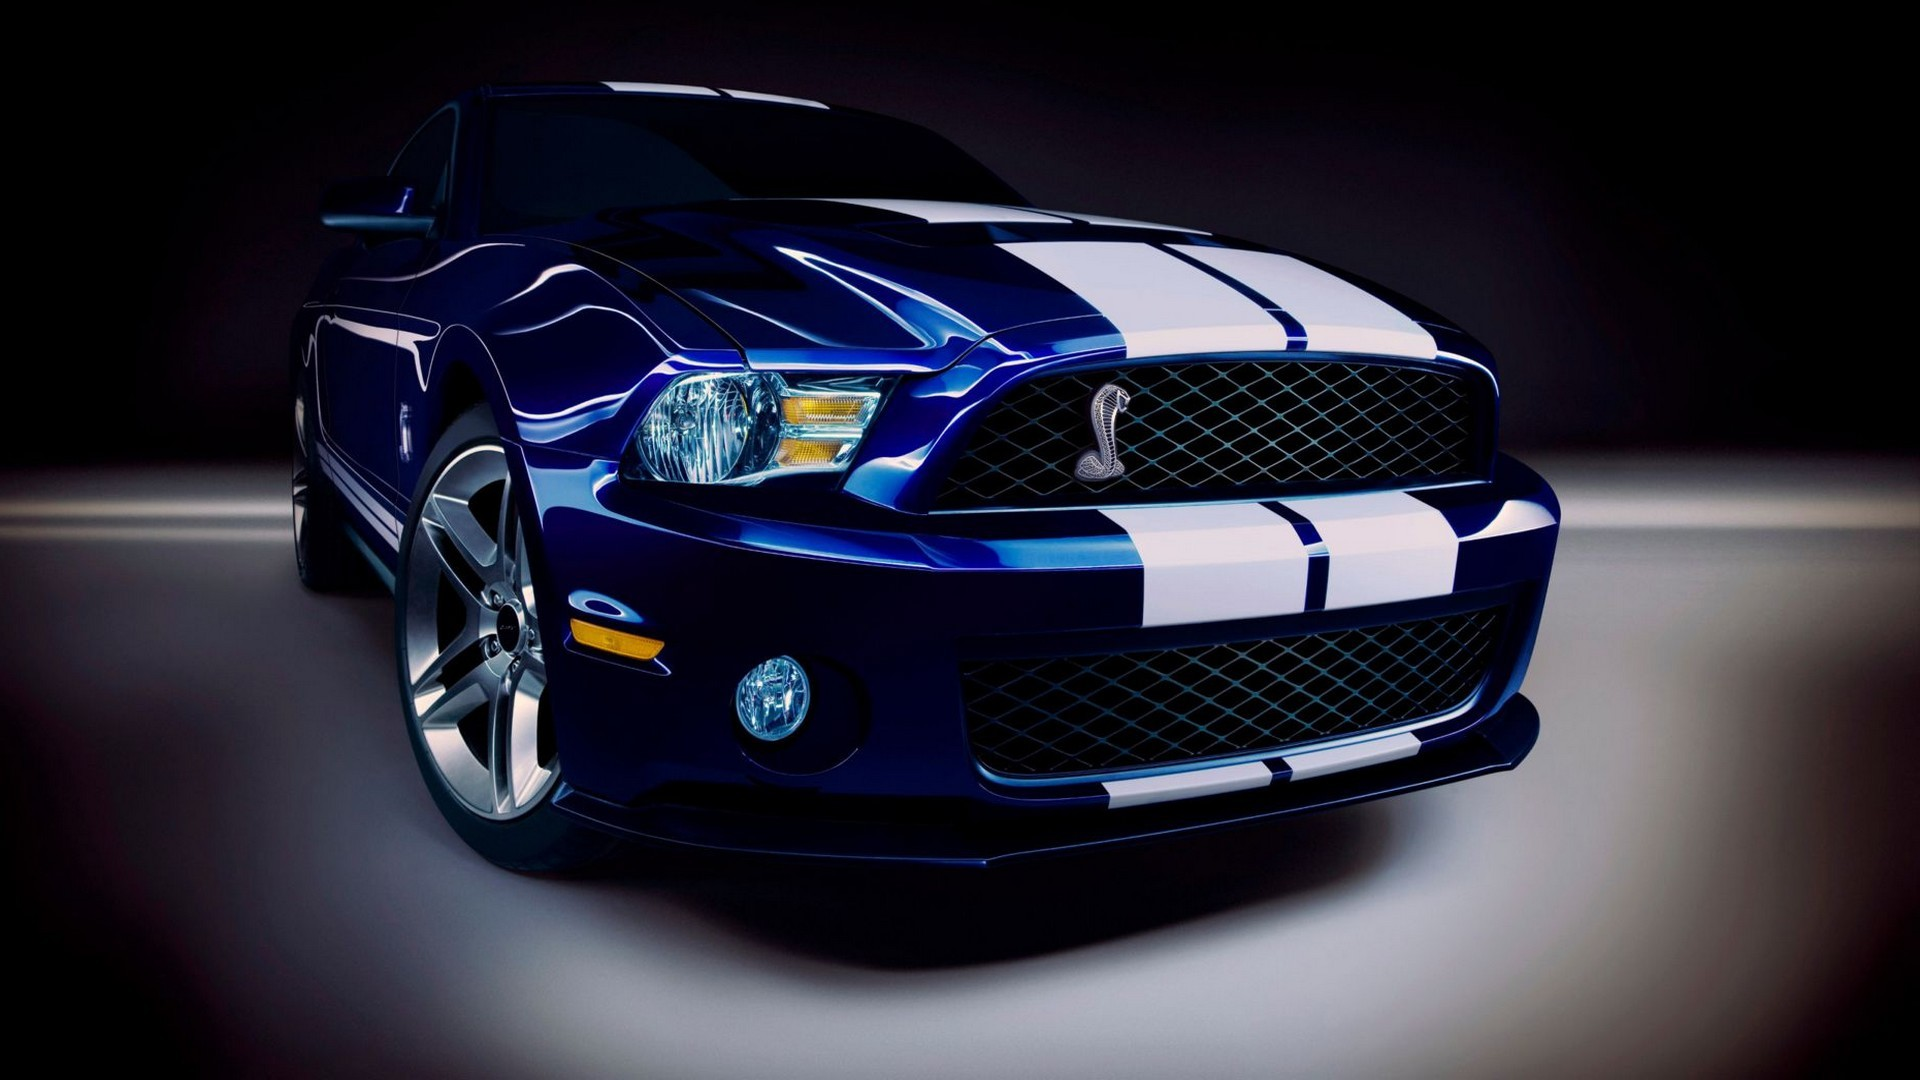 Ford Mustang Shelby GT350 Wallpaper iBackgroundWallpaper 1920x1080